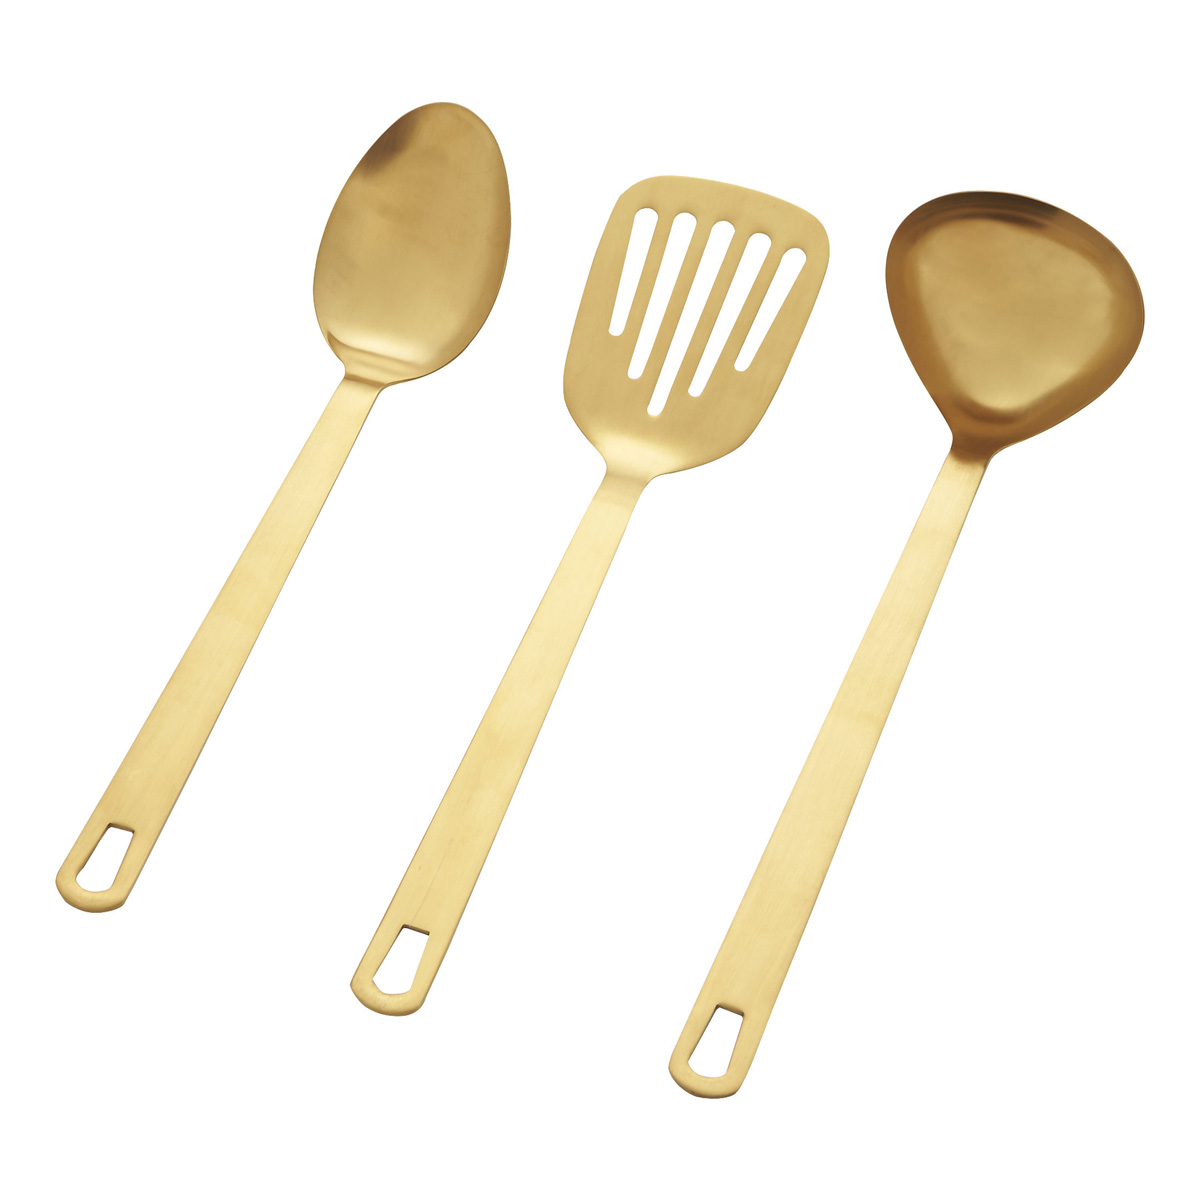 more icon of vector back lit utensils kitchen royalty free amp stock images art